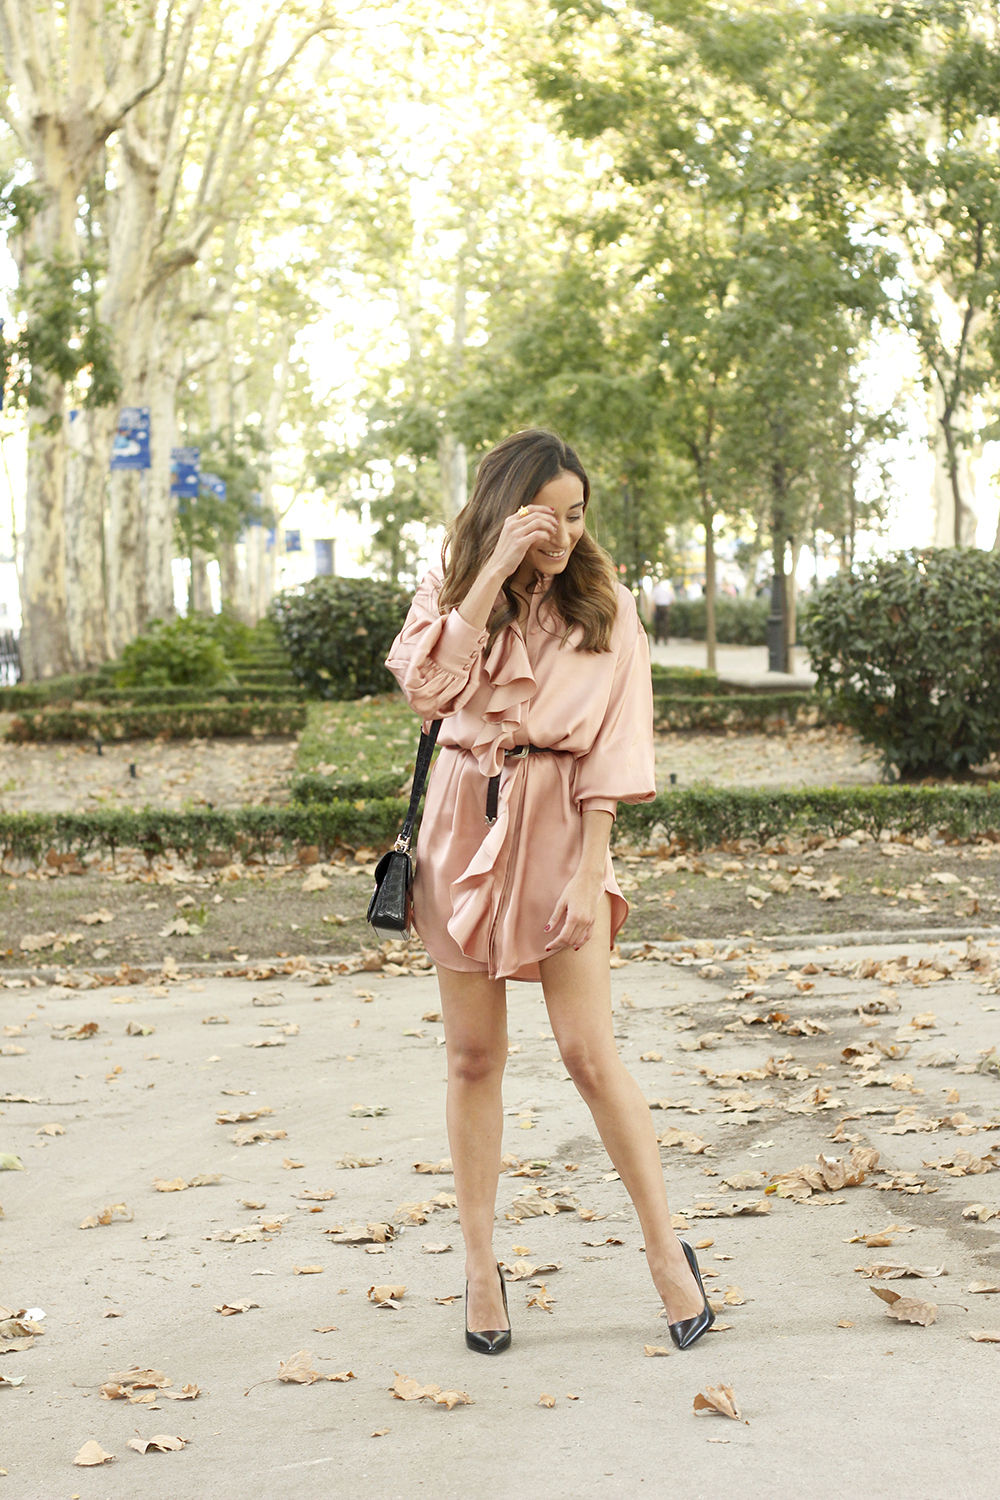 Pink Pale satin dress givenchy bag black heels outfit autumn style fashion01